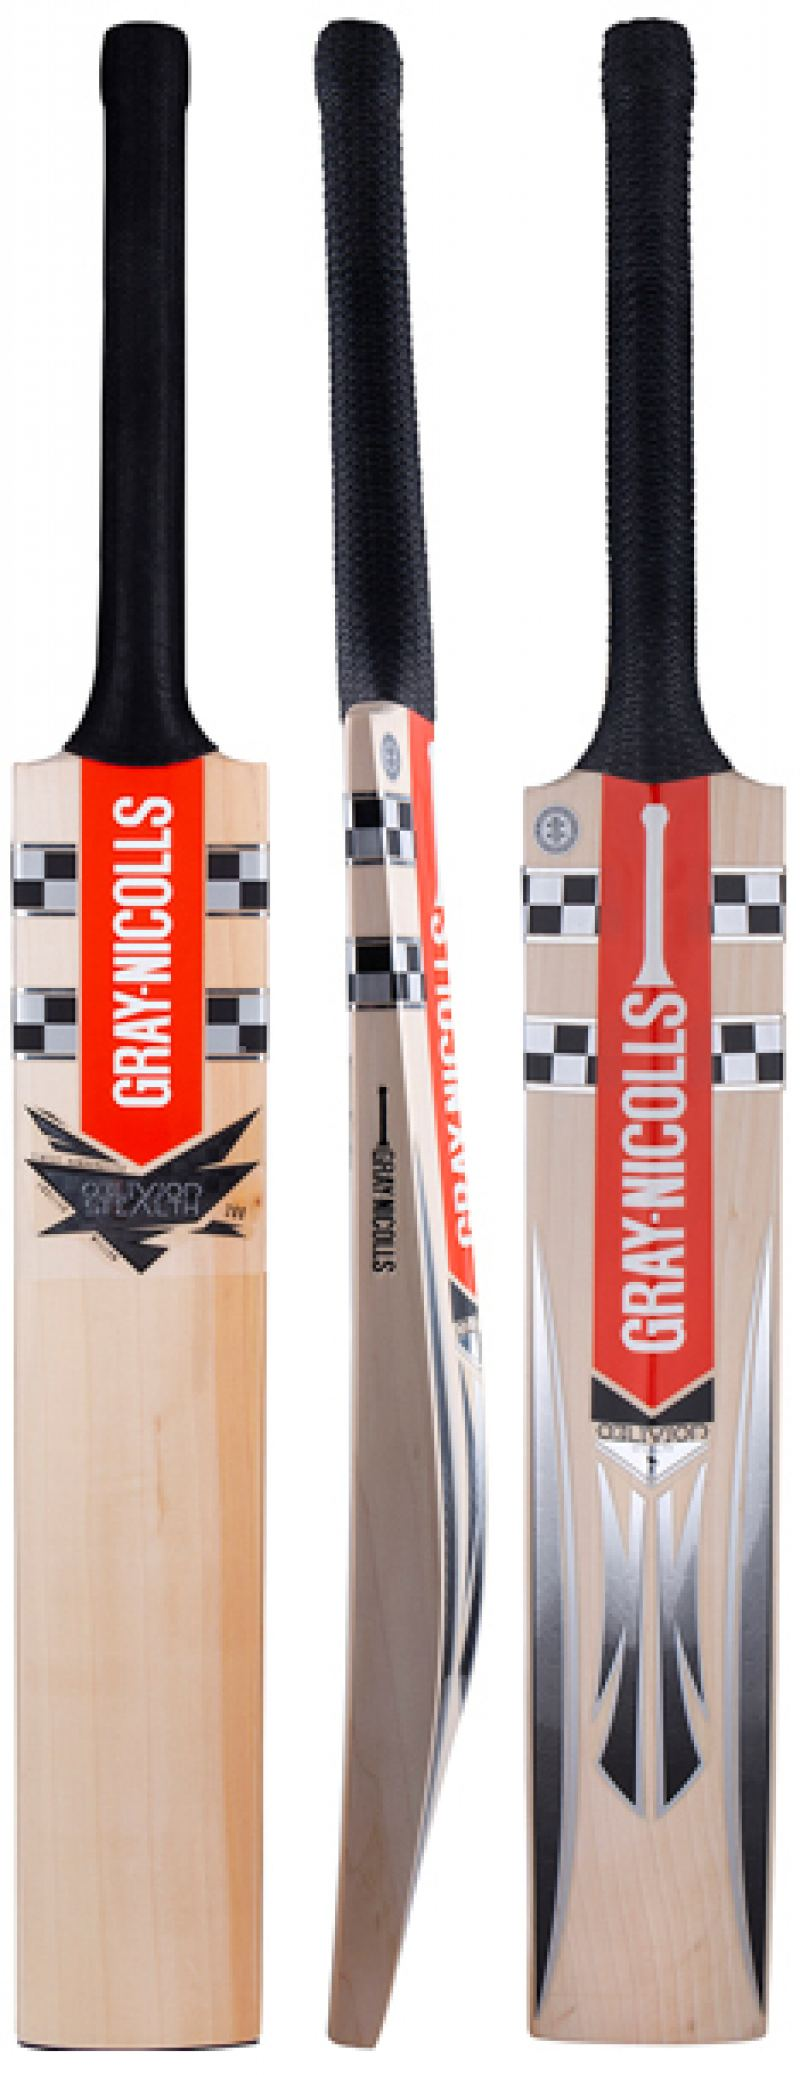 Gray Nicolls Oblivion Stealth 200 Junior Cricket Bat